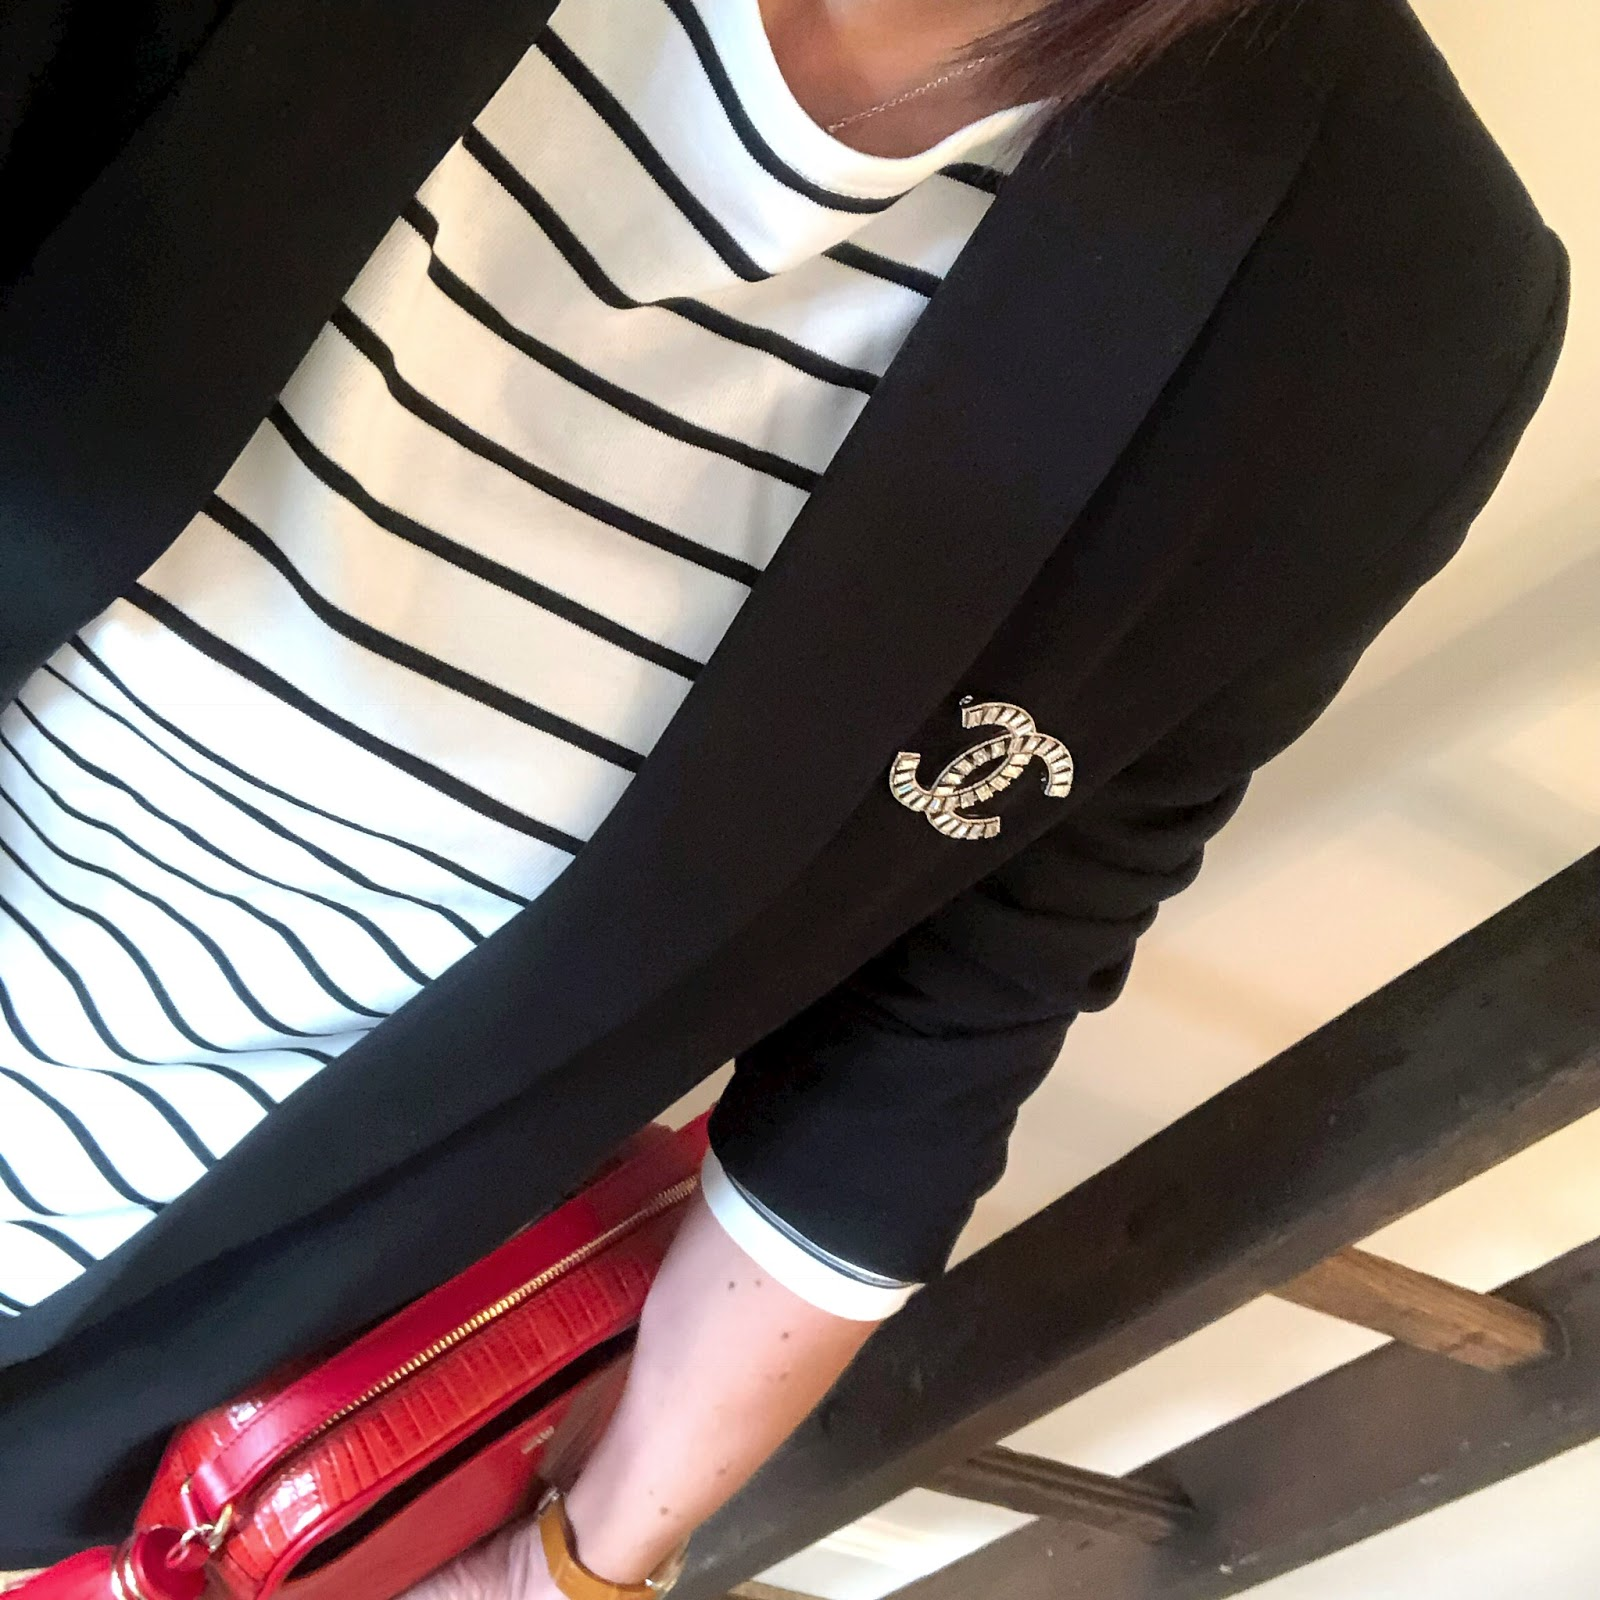 my midlife fashion, uterque mock croc cross body bag, h and m stripe breton long sleeve top, hush biker jeans, j crew bow pointed flats, fenn wright manson harper tuxedo jacket, chanel vintage brooch